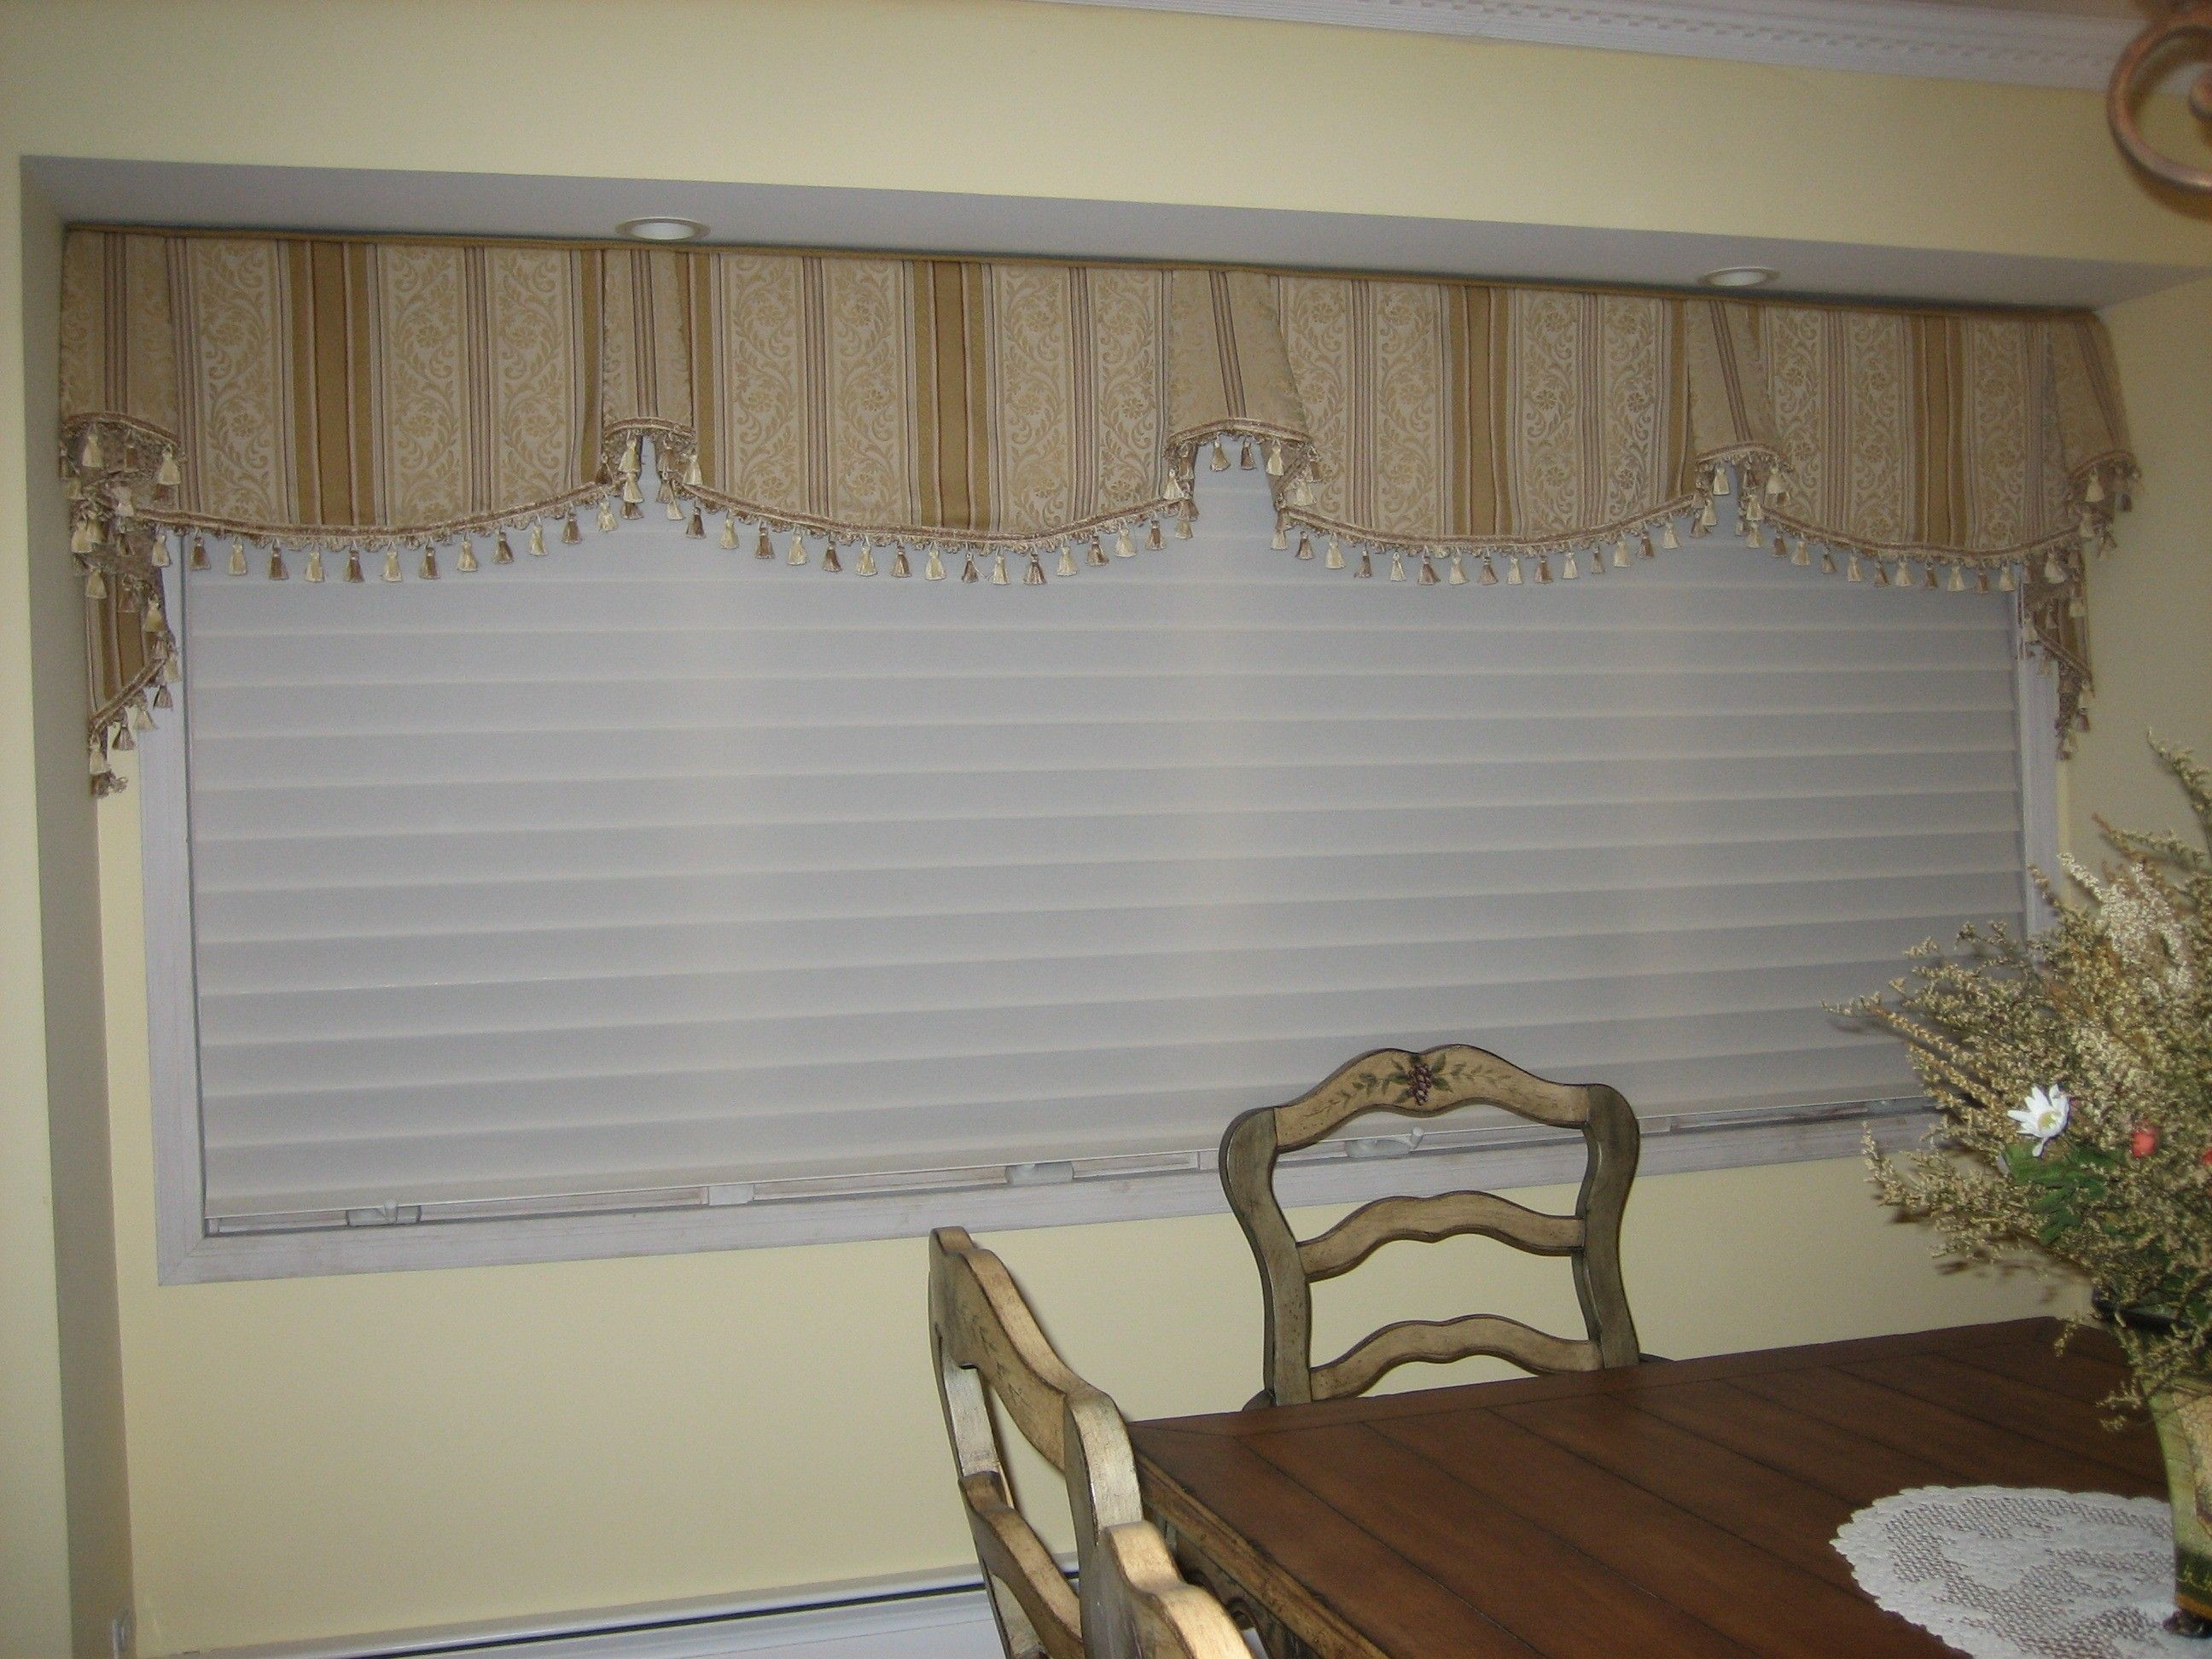 301 moved permanently dining room valance photos